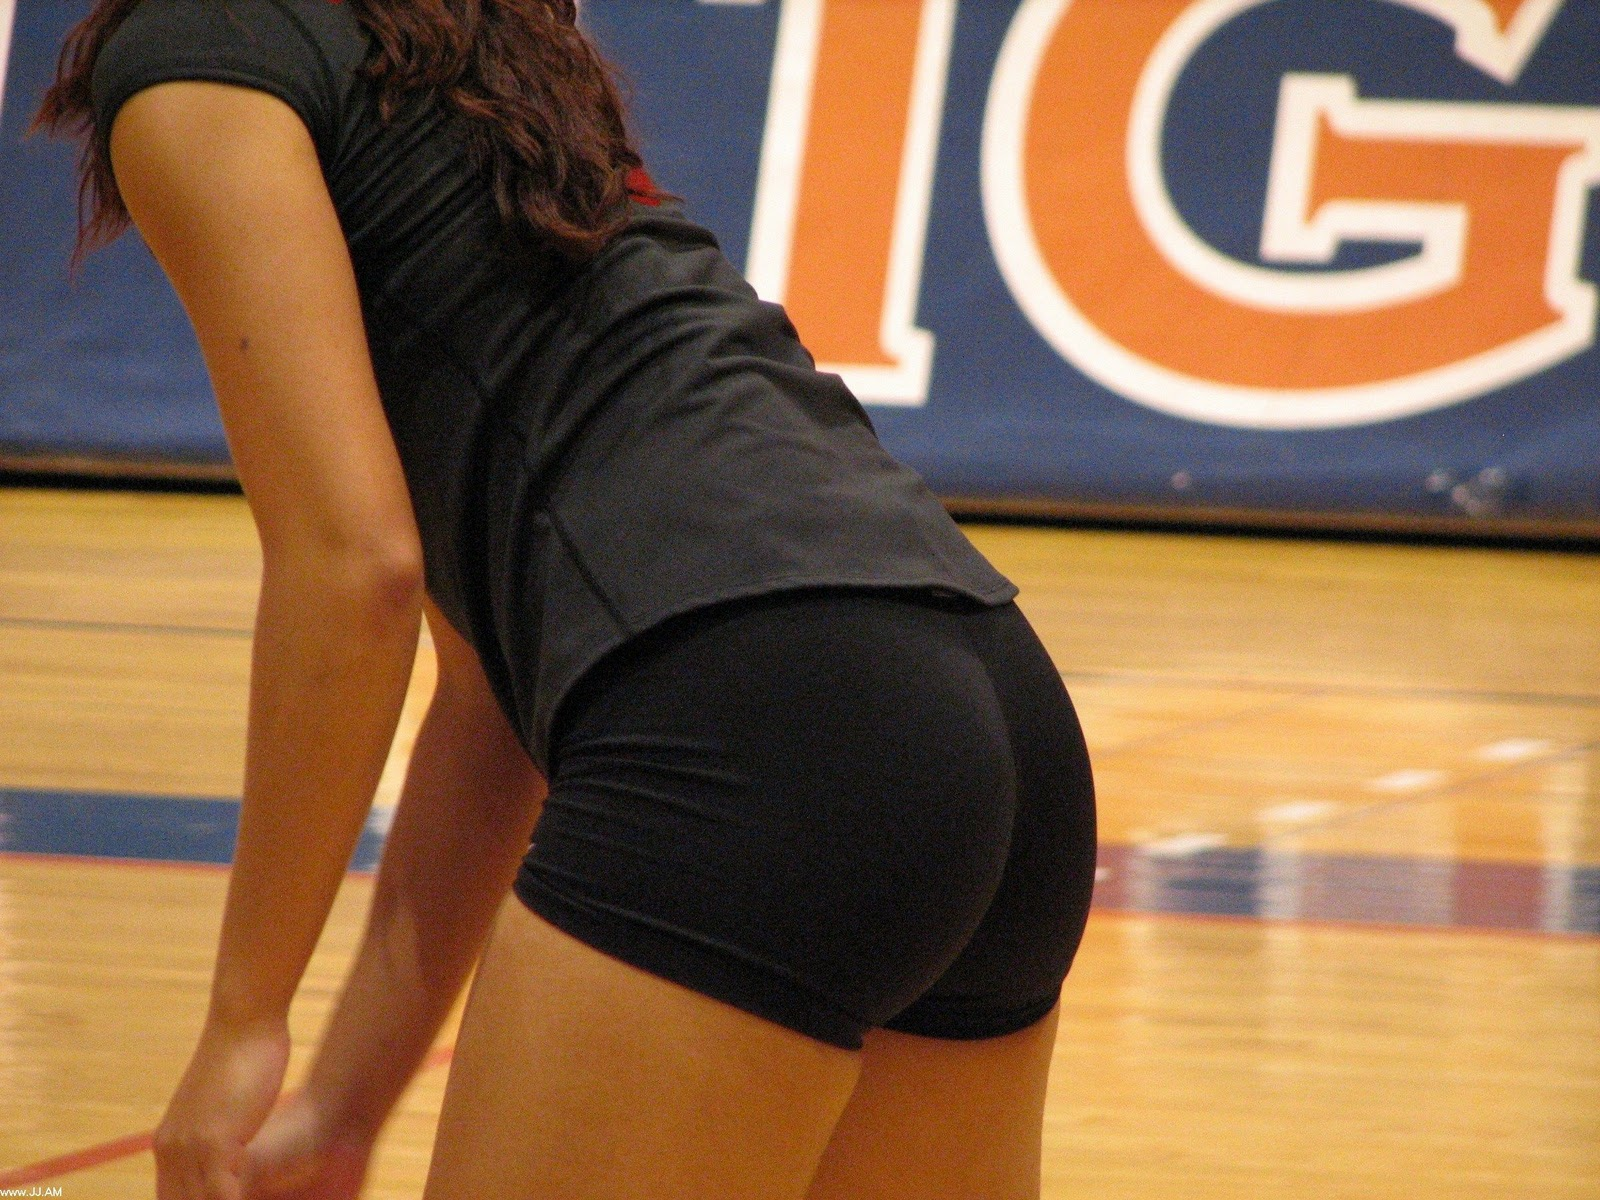 Simple Sexy Girls Volleyball Shorts 21 More Sexy Volleyball Girls Volleyball